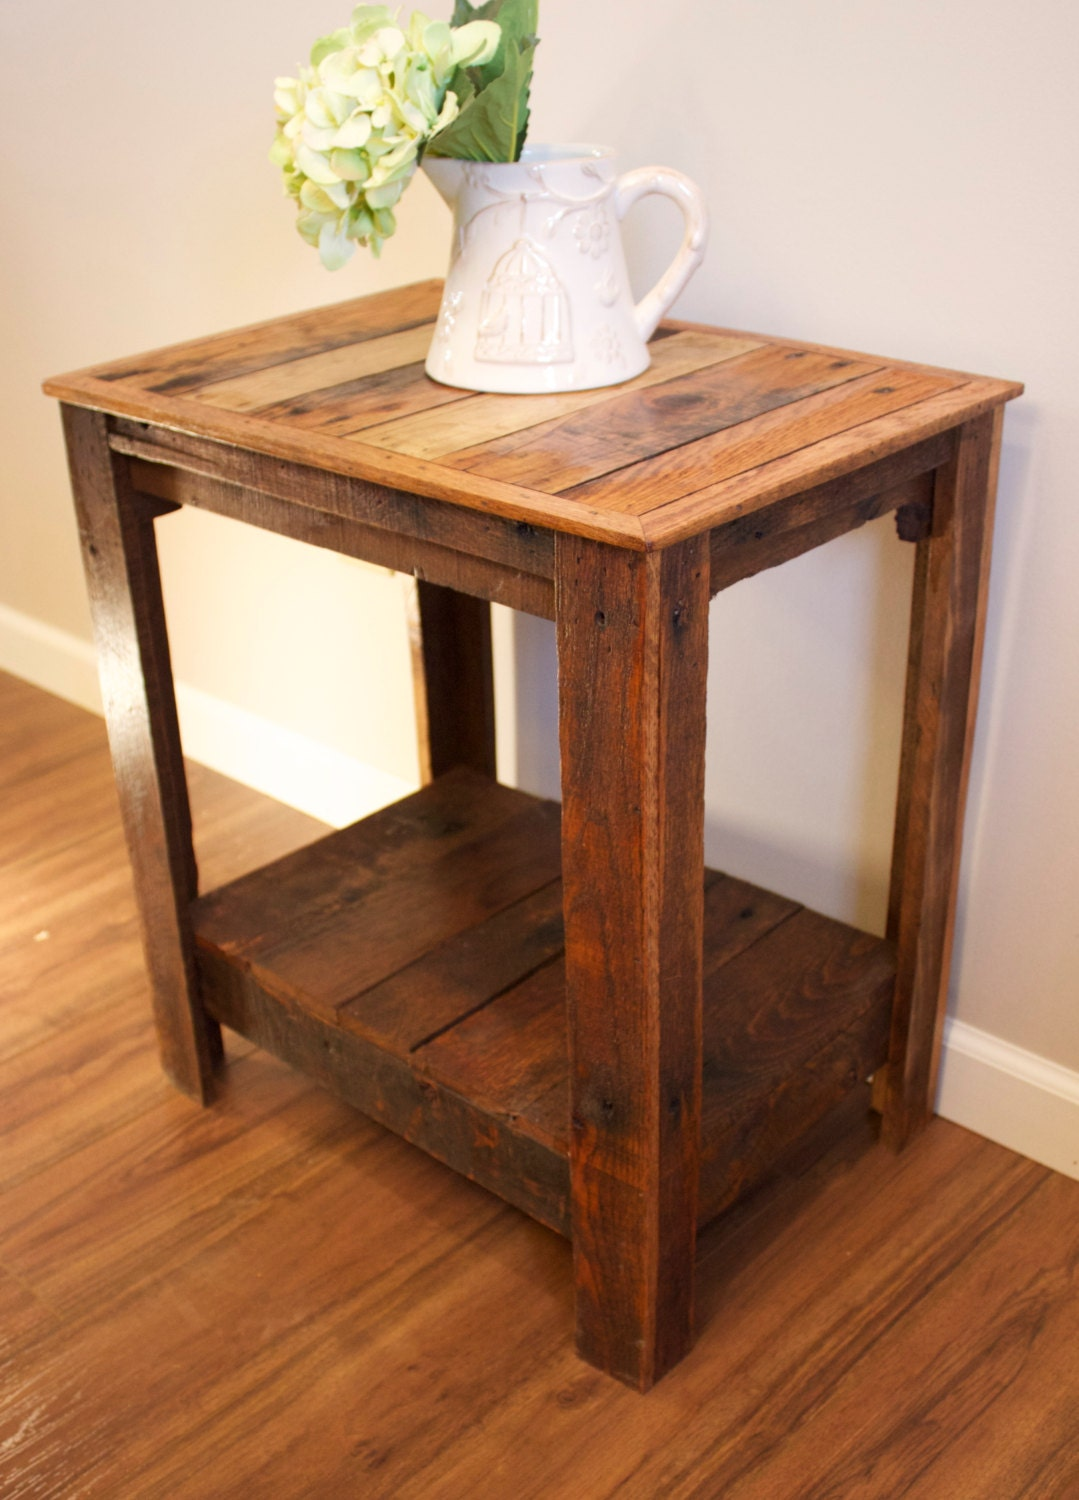 Pallet End Table/Nightstand/Accent Table